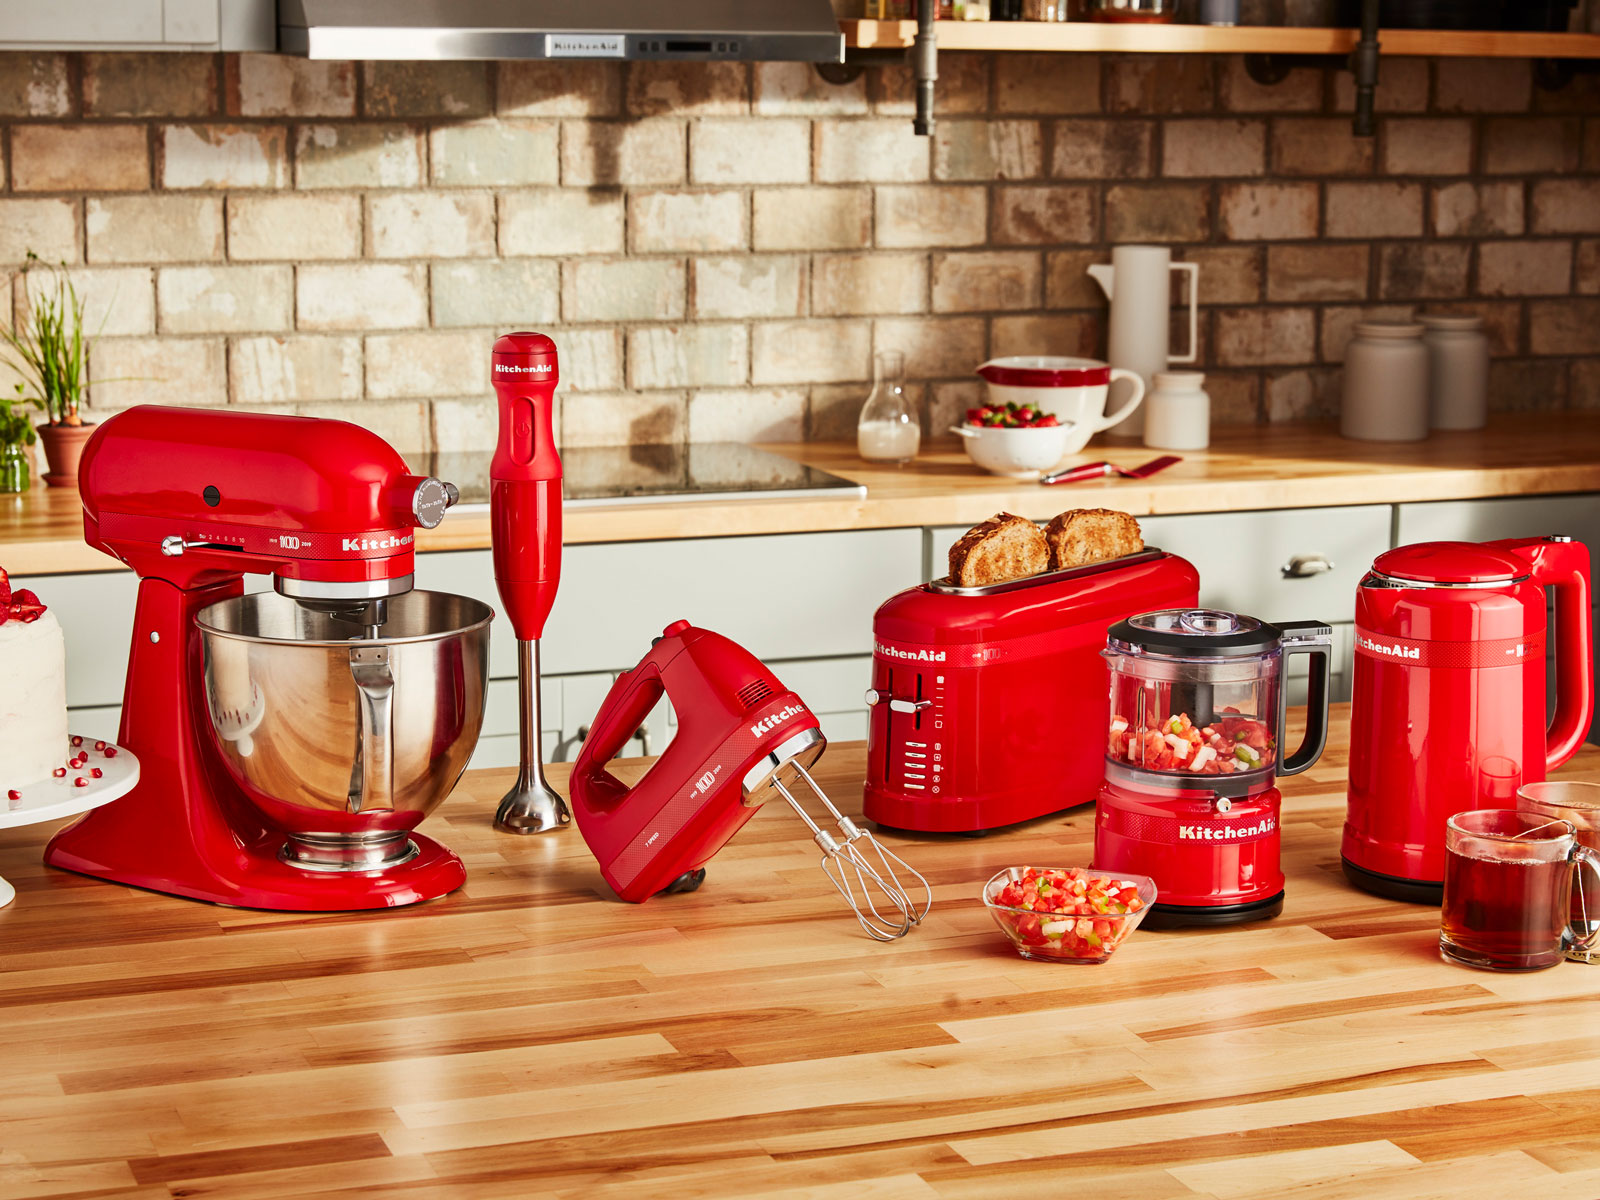 KitchenAid's New Limited Edition Color Is Available Now